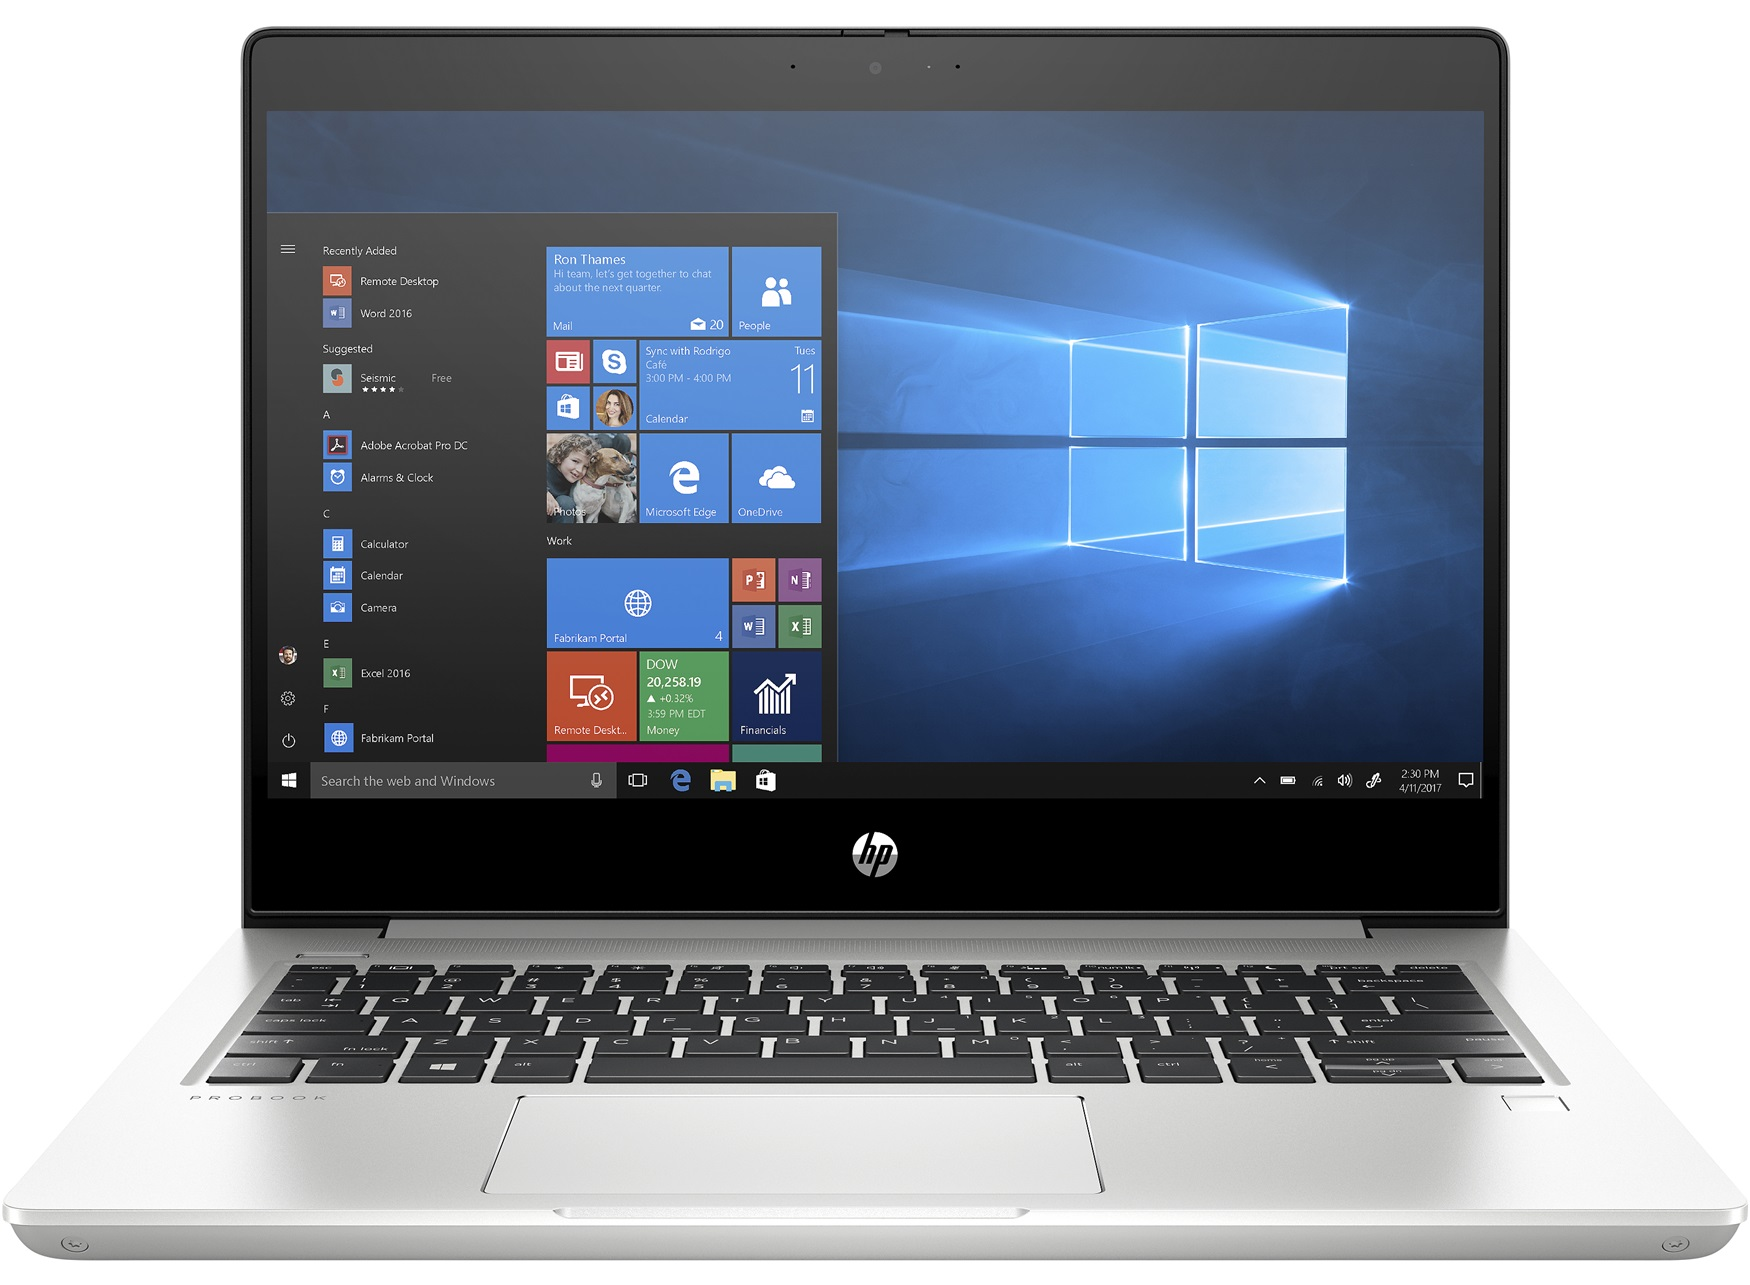 HP ProBook 430 G7 13.3' FHD i3-10110U 8GB 256GB SSD WIN10 HOME Backlit HDMI WIFI BT 3CELL 1.49kg 1YR ONSITE WTY W10H Notebook (9UQ46PA)